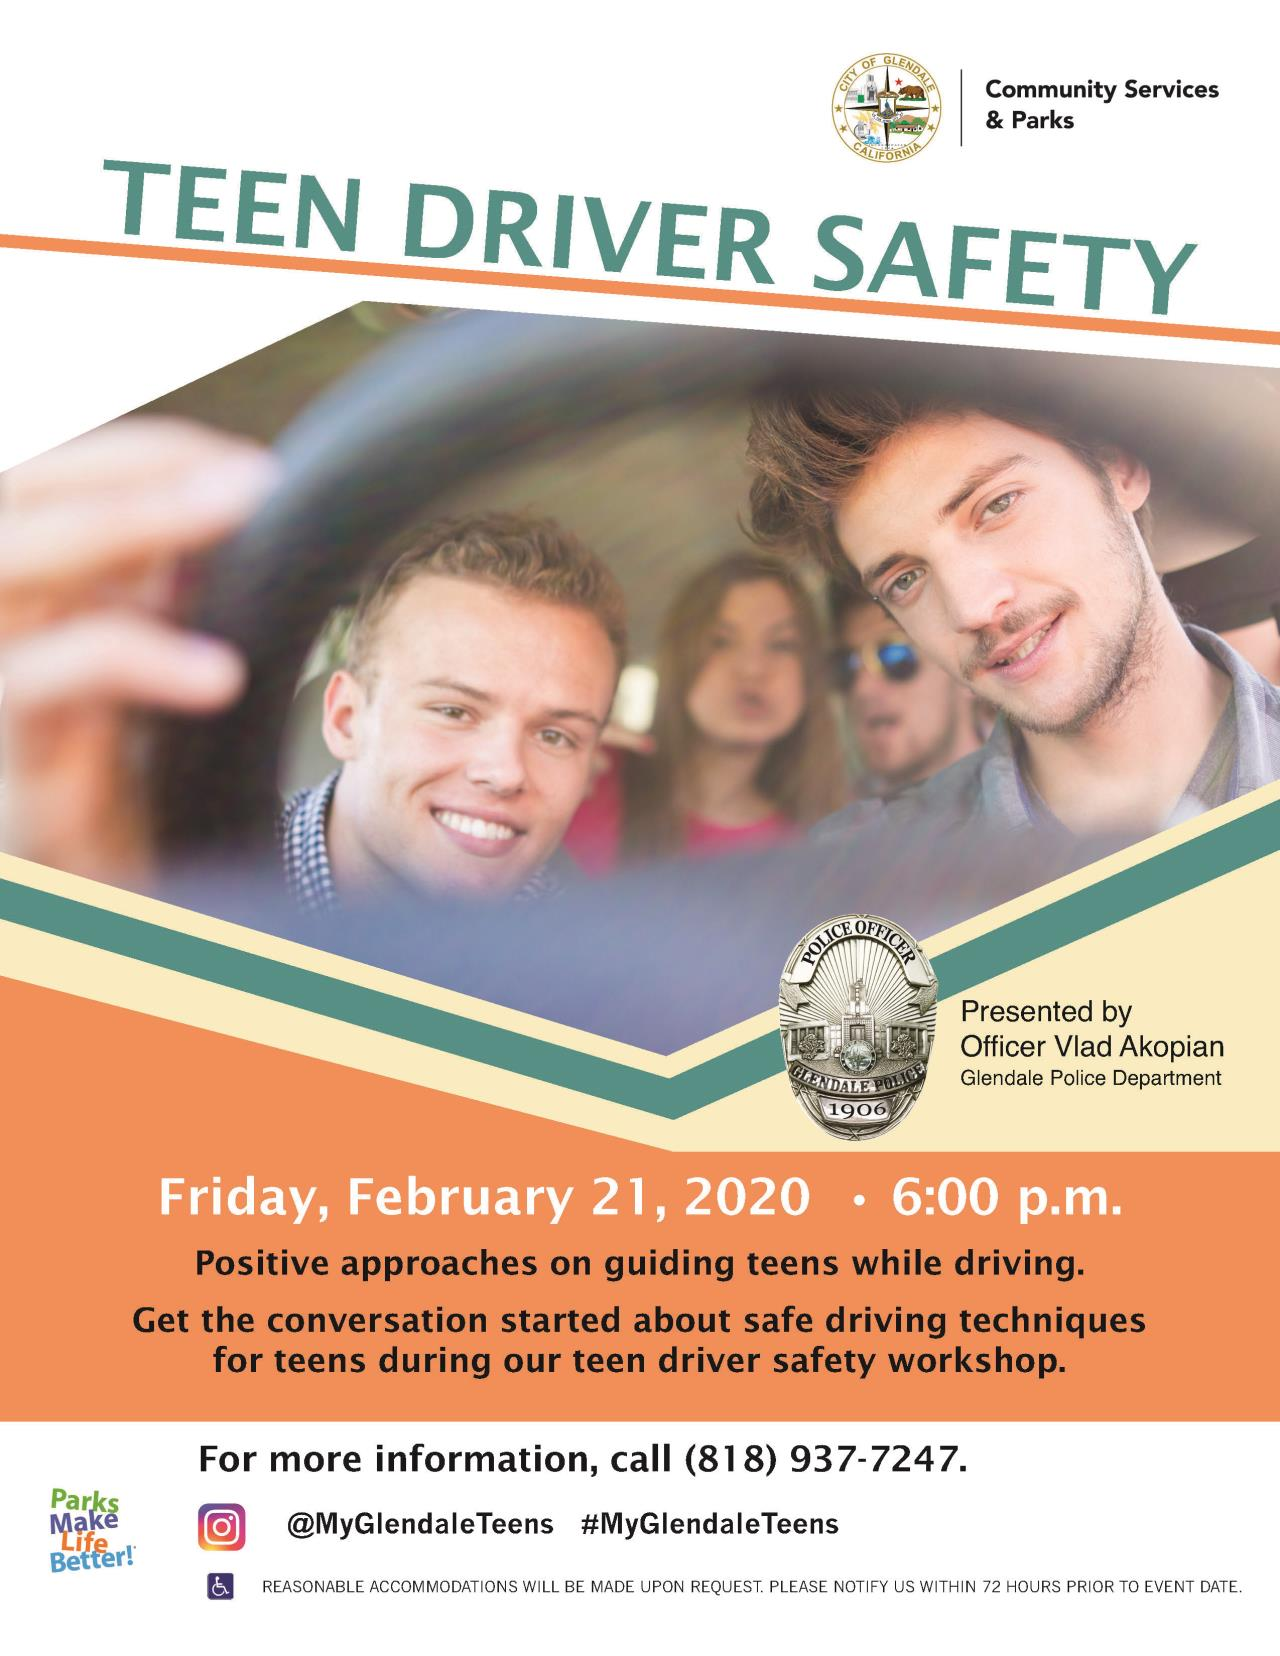 Teen Driver Safety Flyer 2020 NEW LOGO